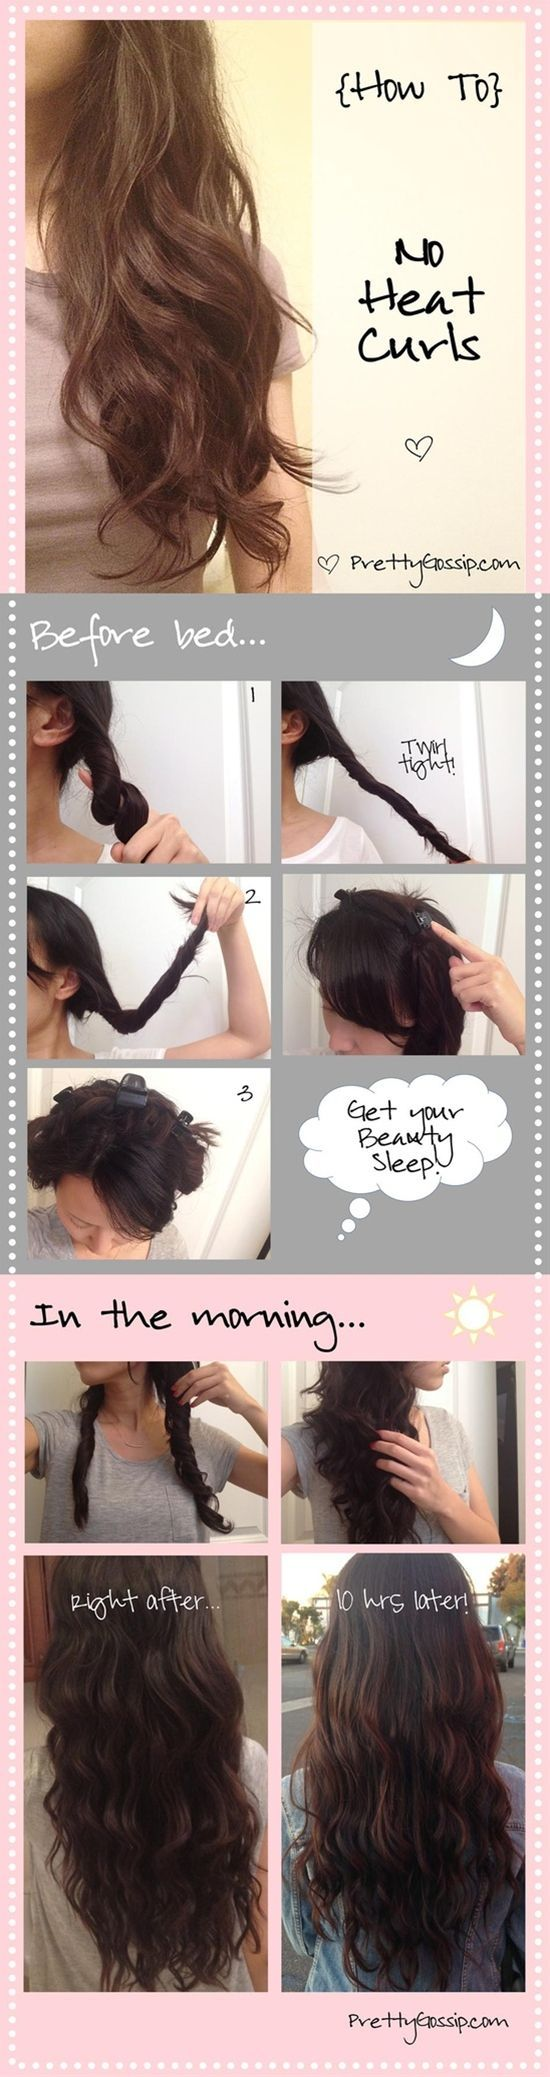 No-Heat Curls